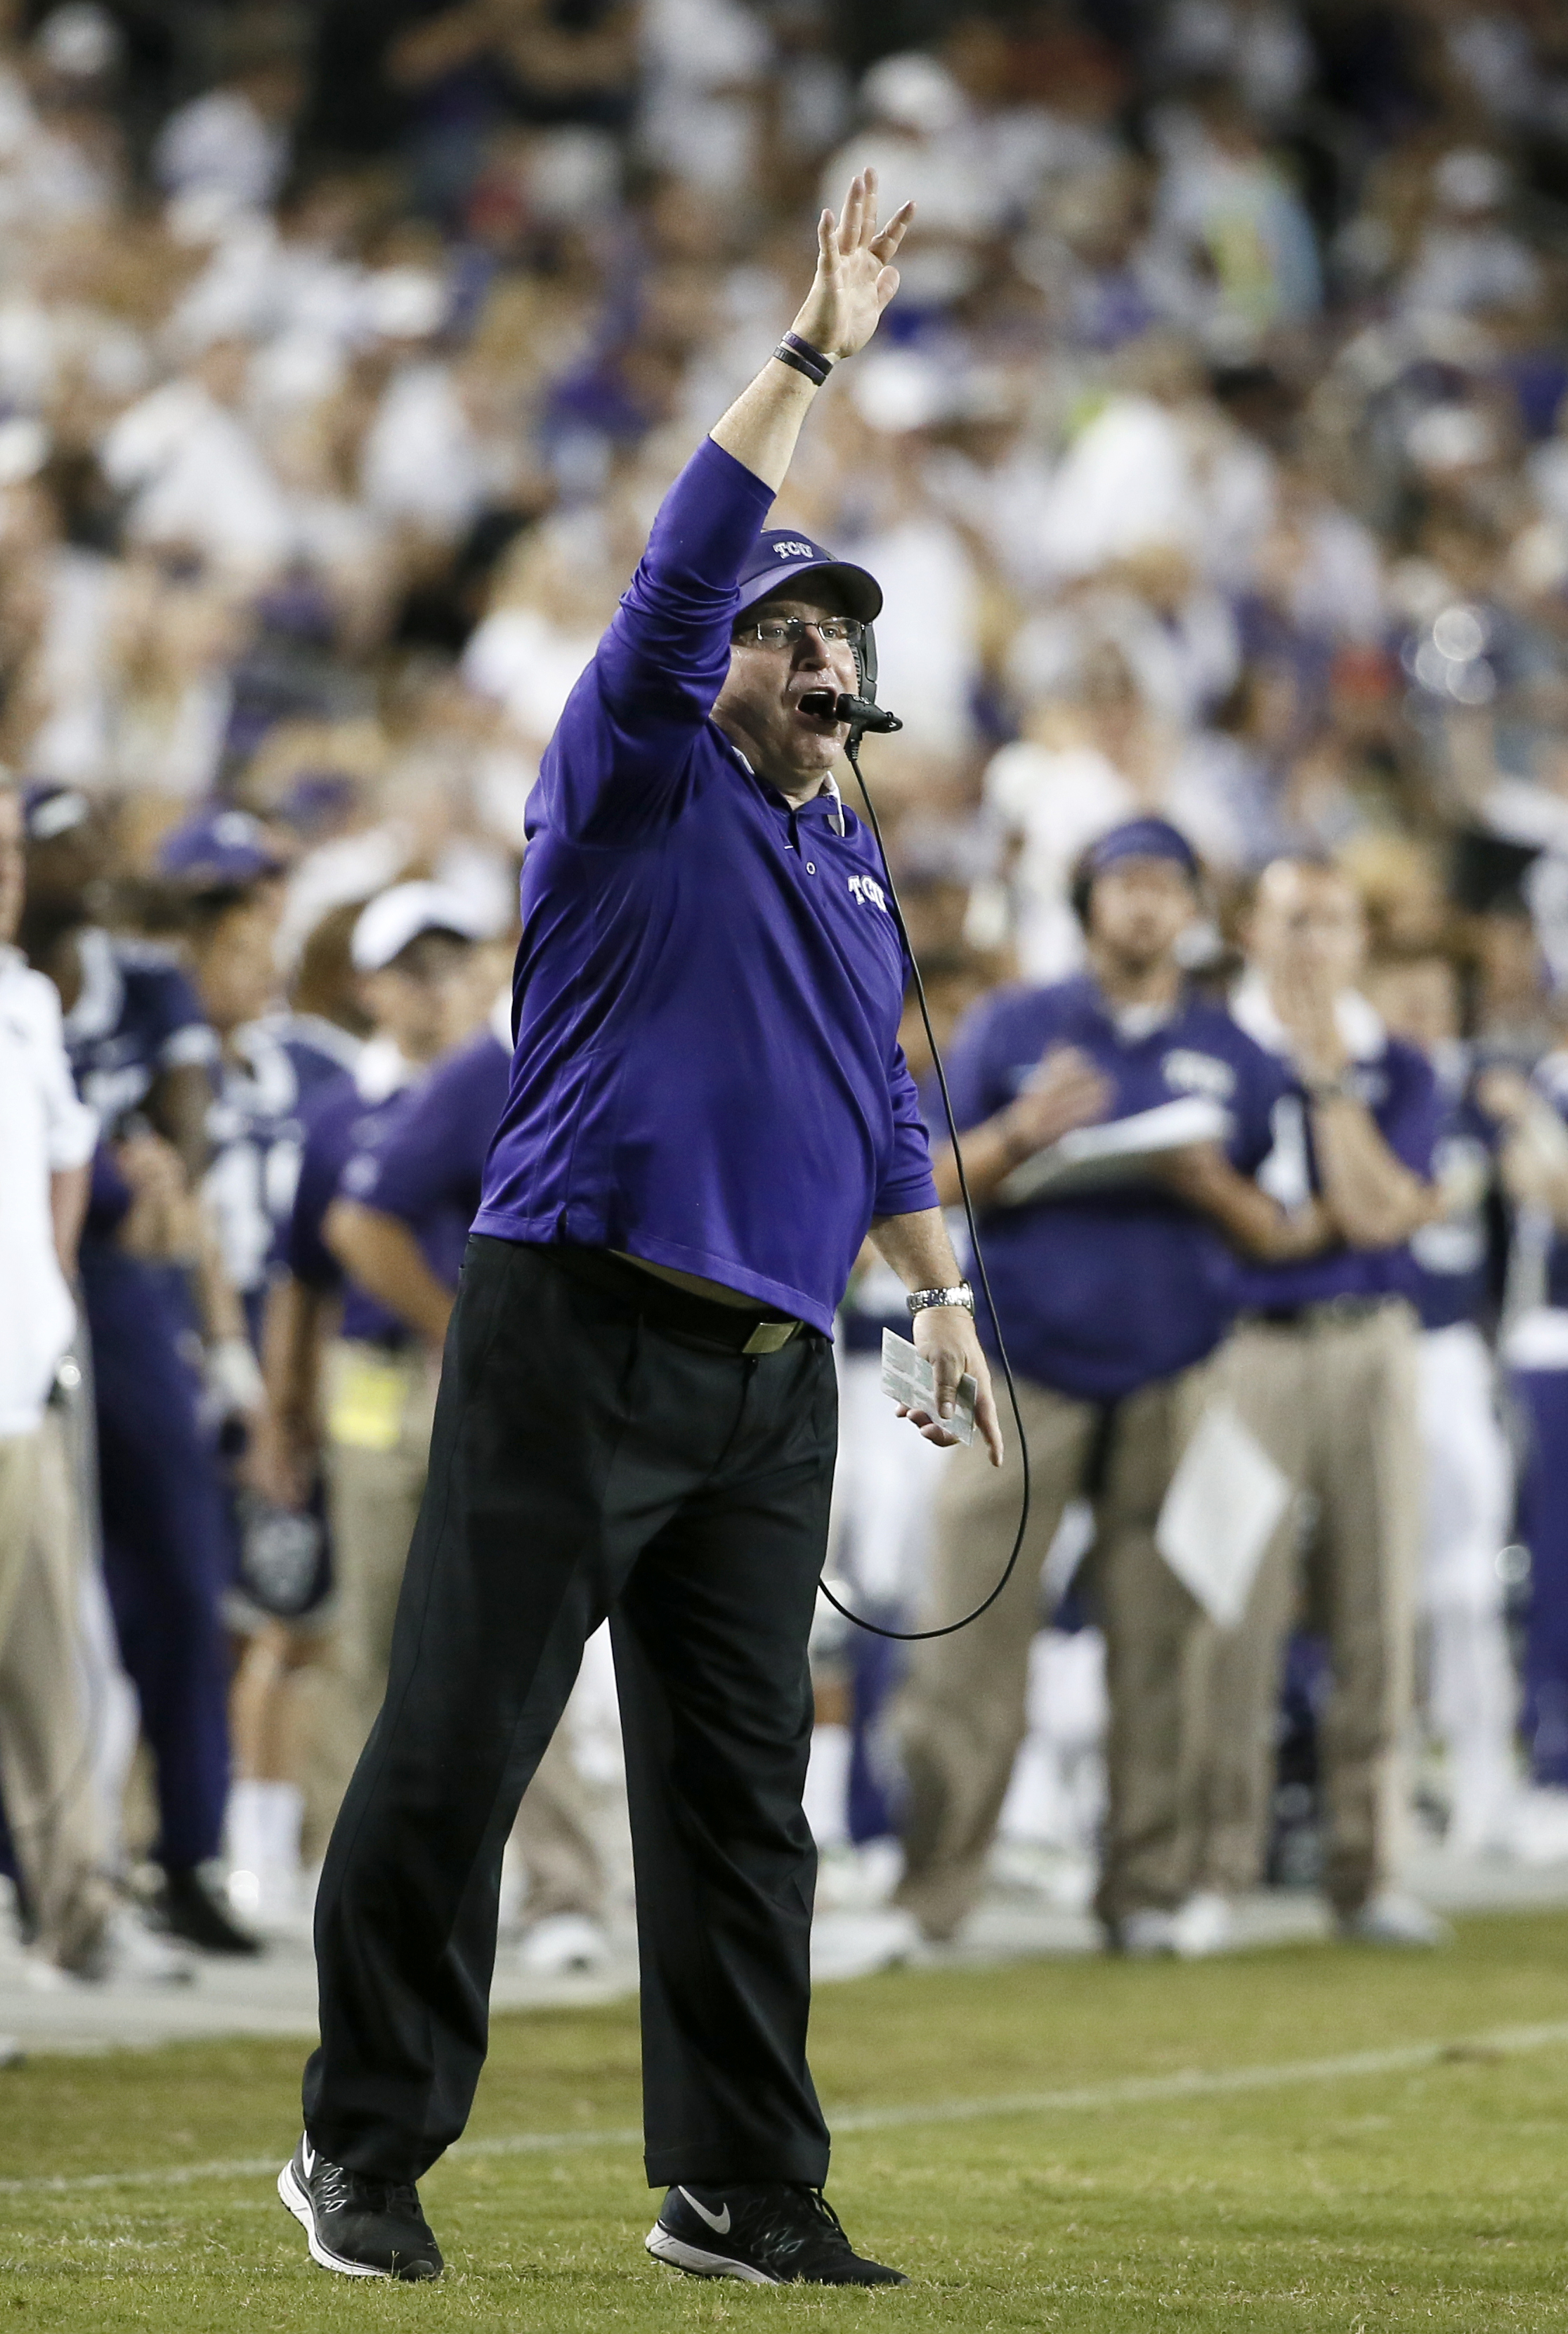 TCU head coach Gary Patterson signals to his defense in the second half of an NCAA college football game against SMU, Saturday, Sept. 19, 2015, in Fort Worth, Texas. (AP Photo/Tony Gutierrez)